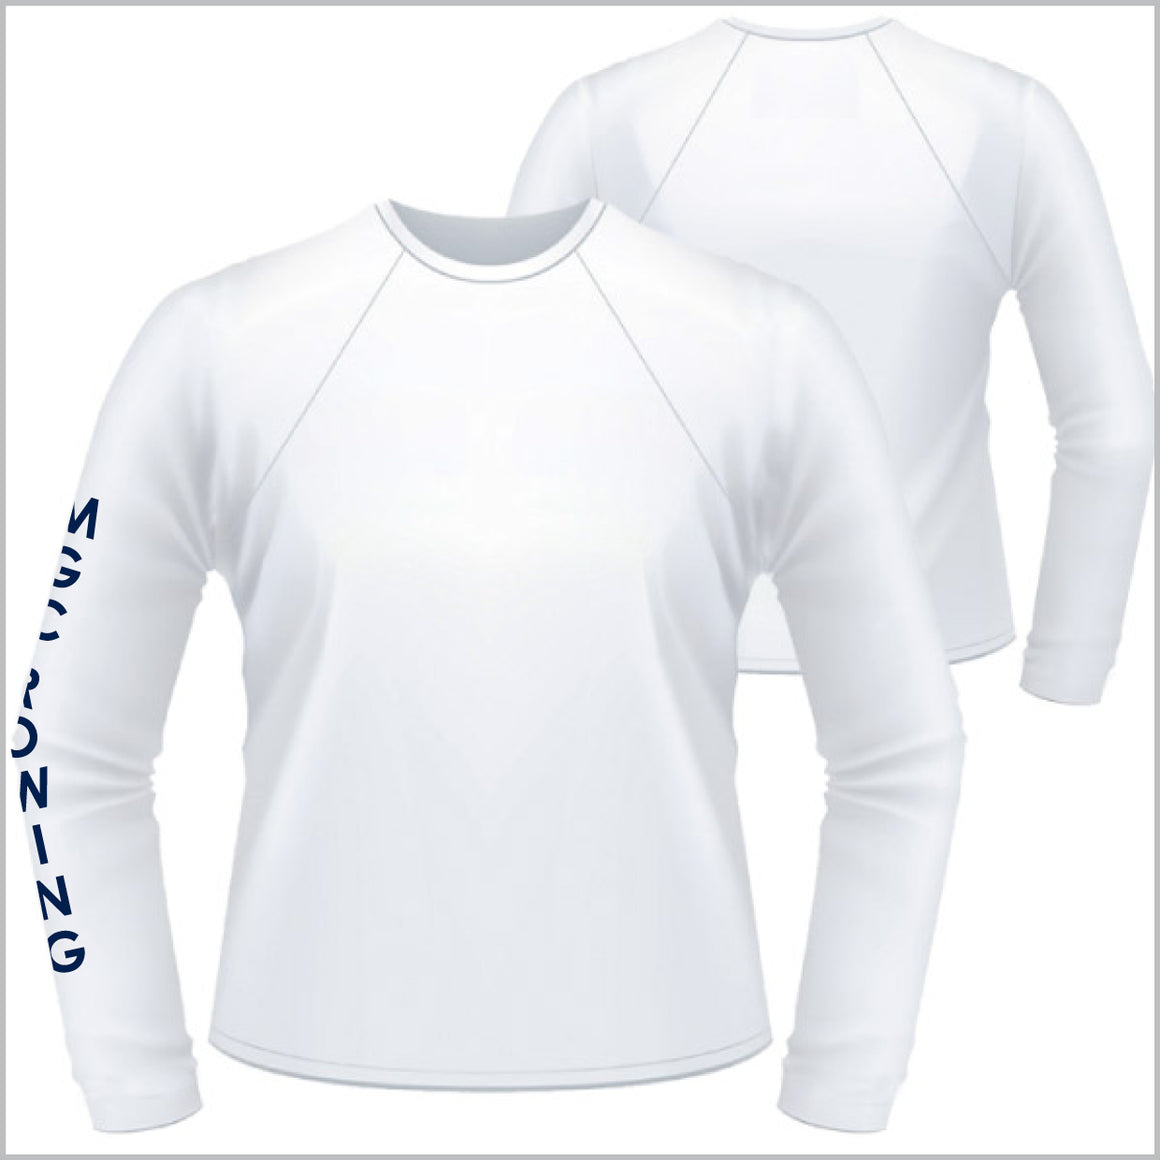 Melbourne Girls College L/S UVP